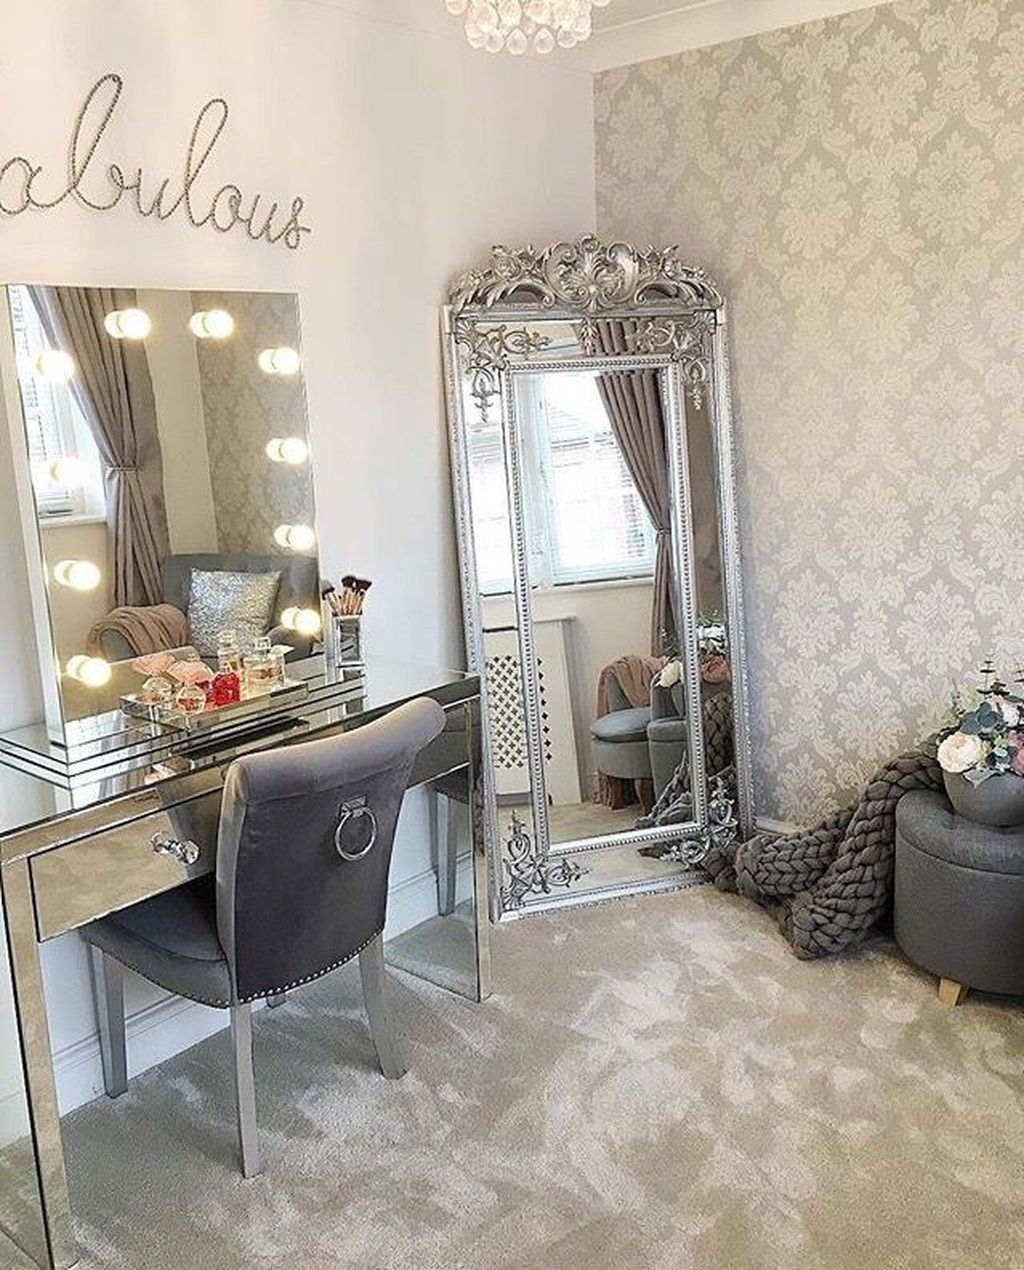 40 Dressing Table Ideas In Your Room Homishome